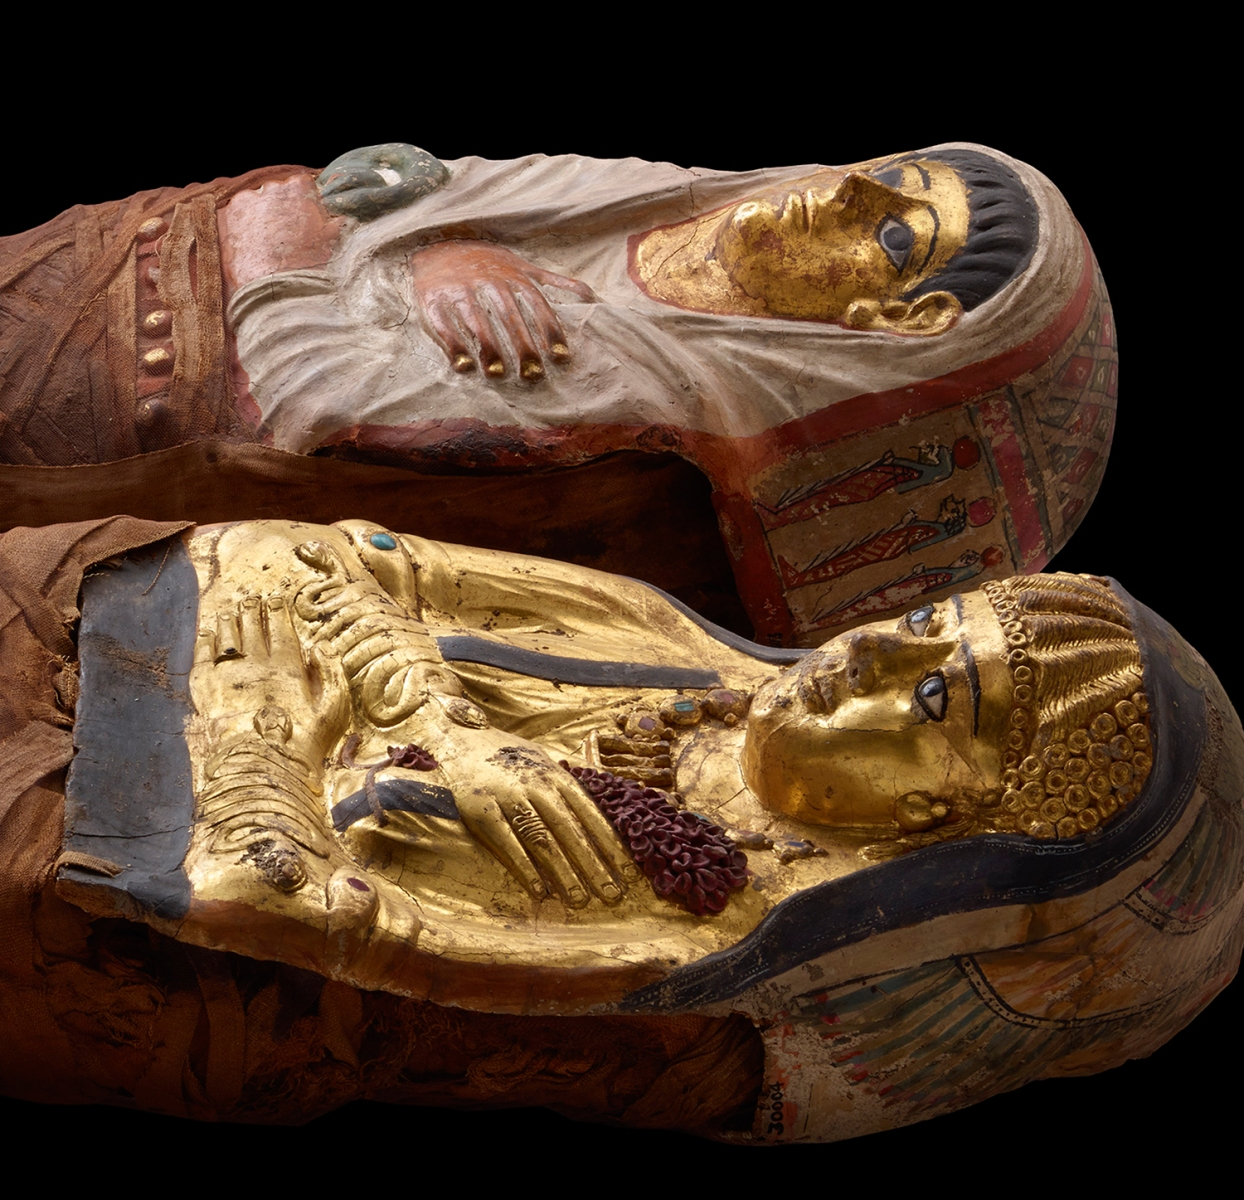 CT scanning of these two beautifully-gilded and decorated mummies of Ptolemaic Egypt revealed a young sister and brother. Both are portrayed wearing a mix of Greek fashions (like the golden girl's curls) and Egyptian fashions.